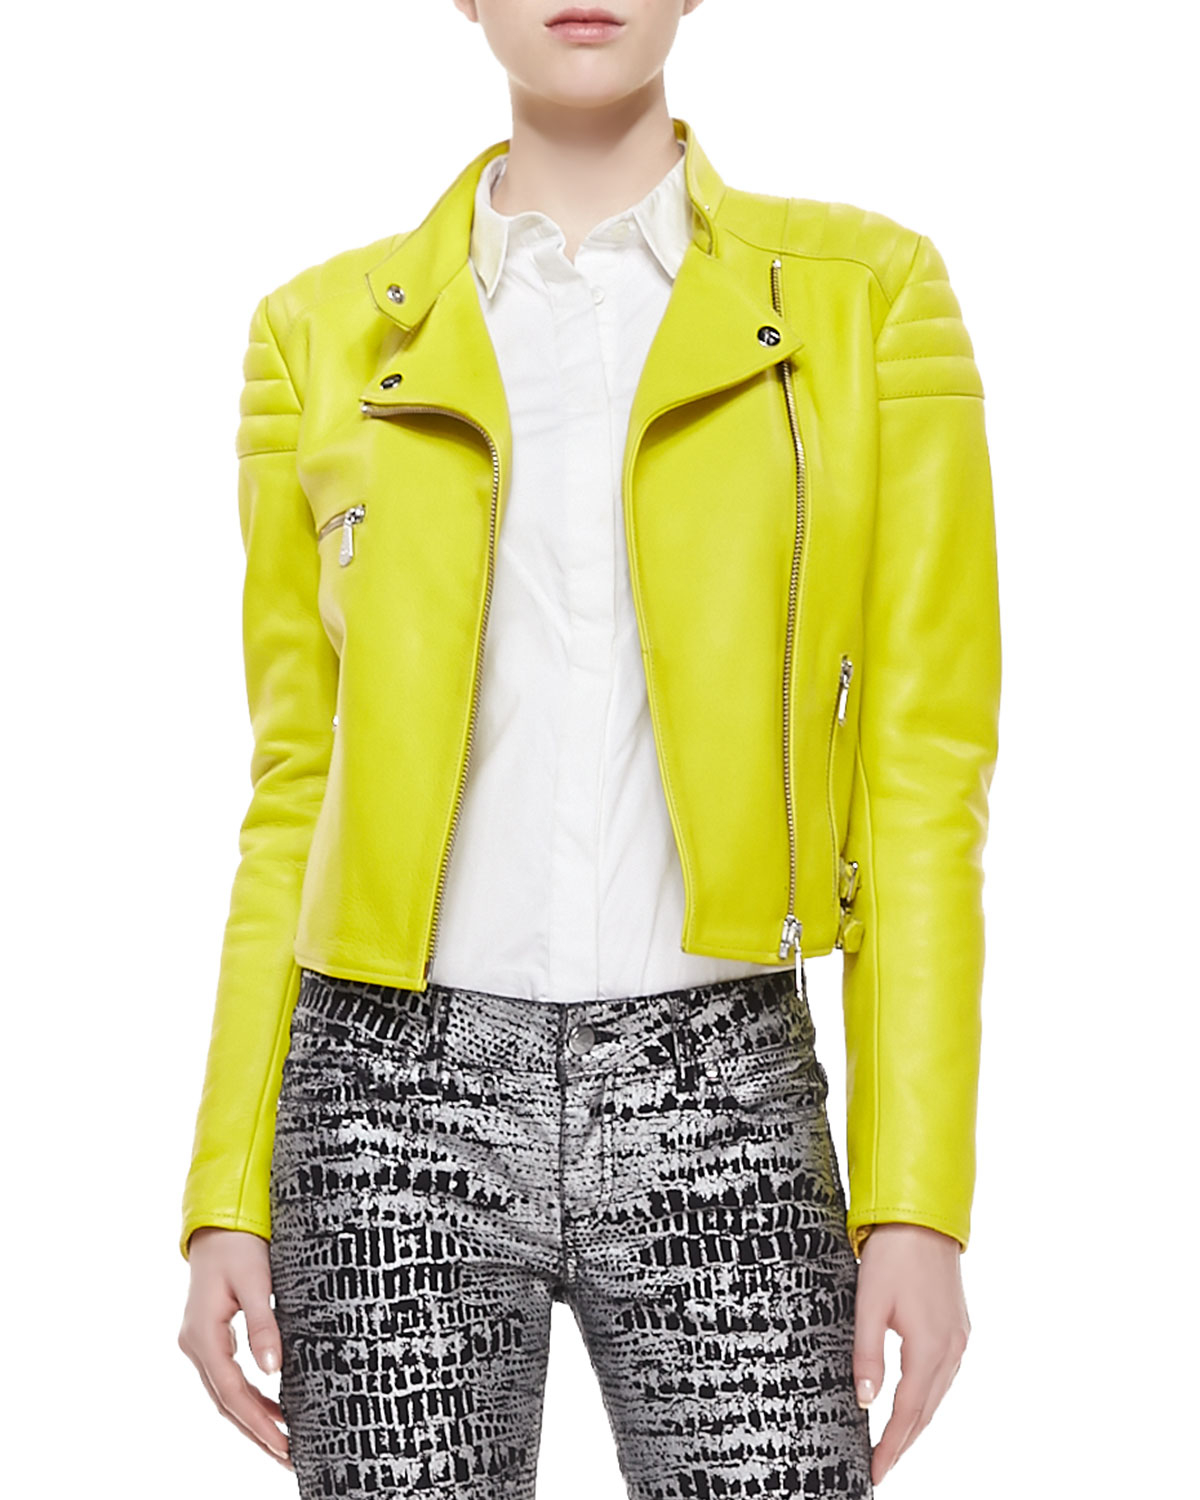 Lyst - Mcq Neon Leather Zip Biker Jacket in Green